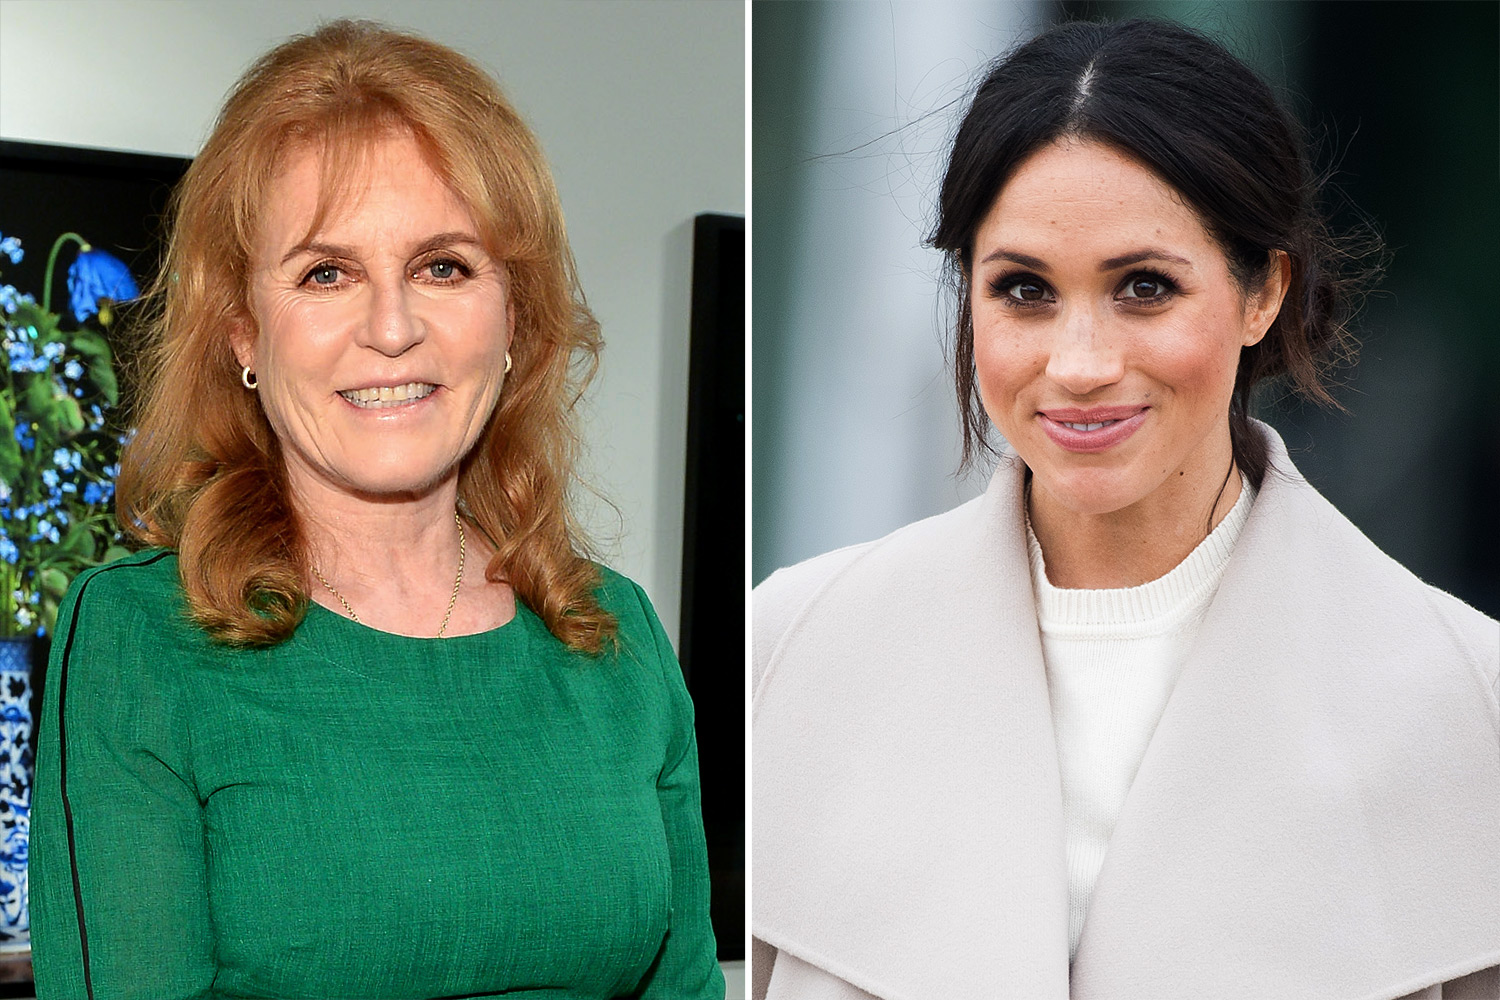 Sarah Ferguson and Meghan Markle